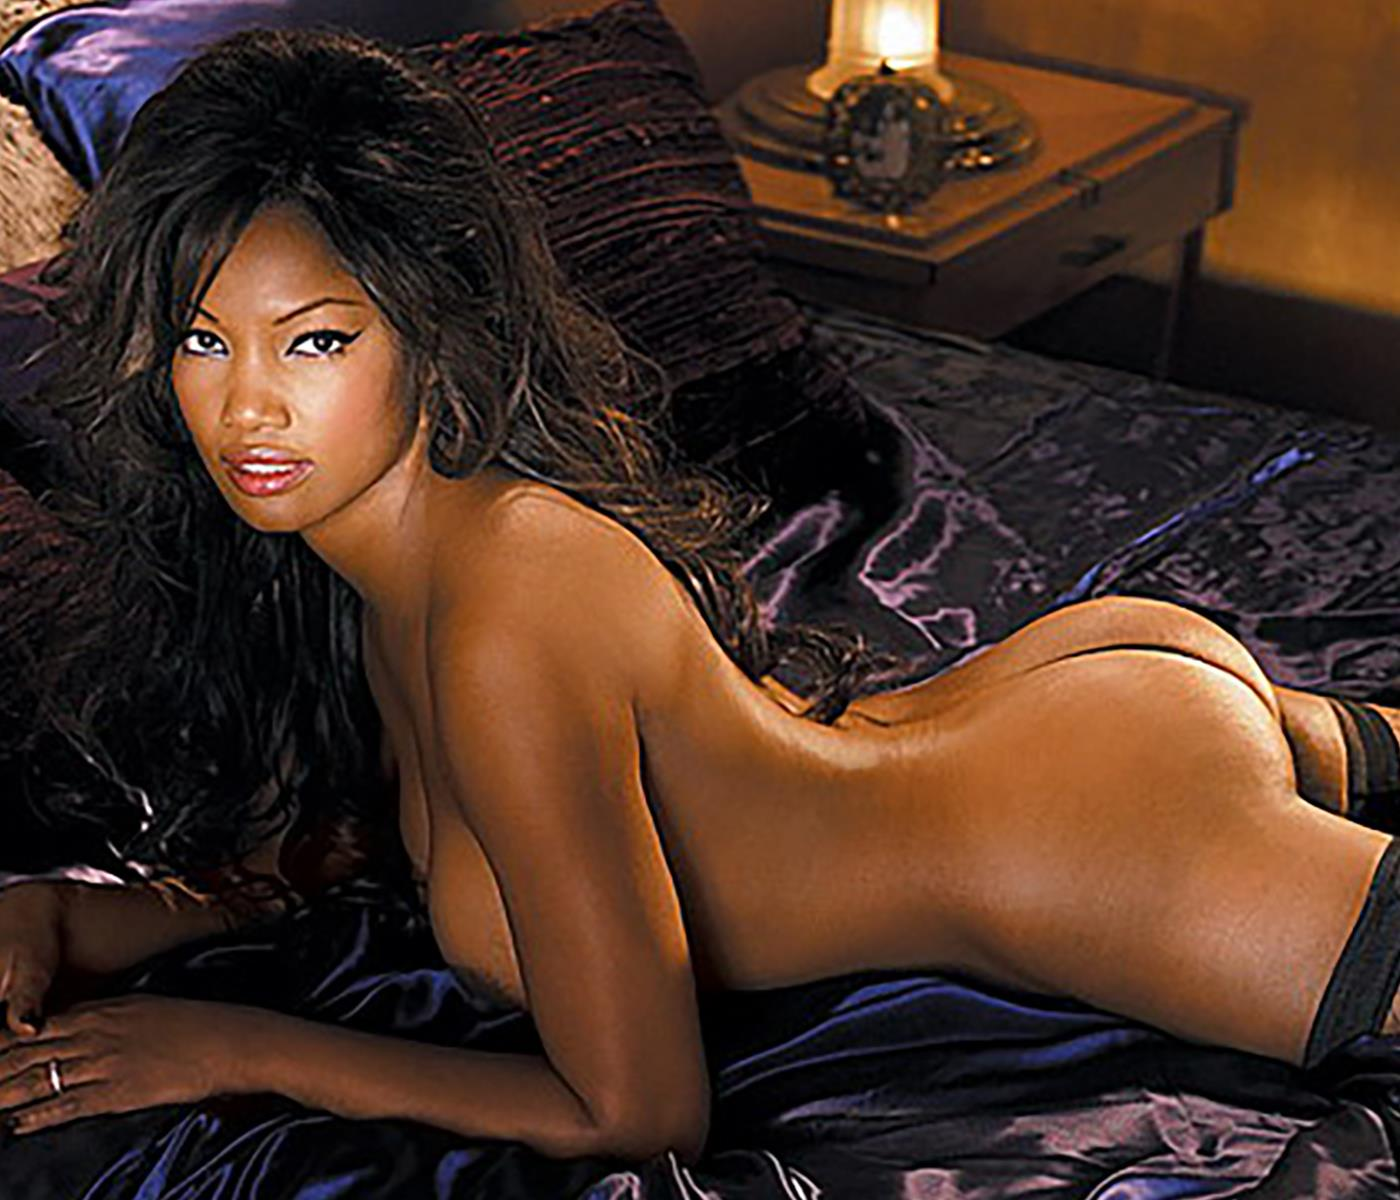 Garcelle beauvais naked pics — photo 6